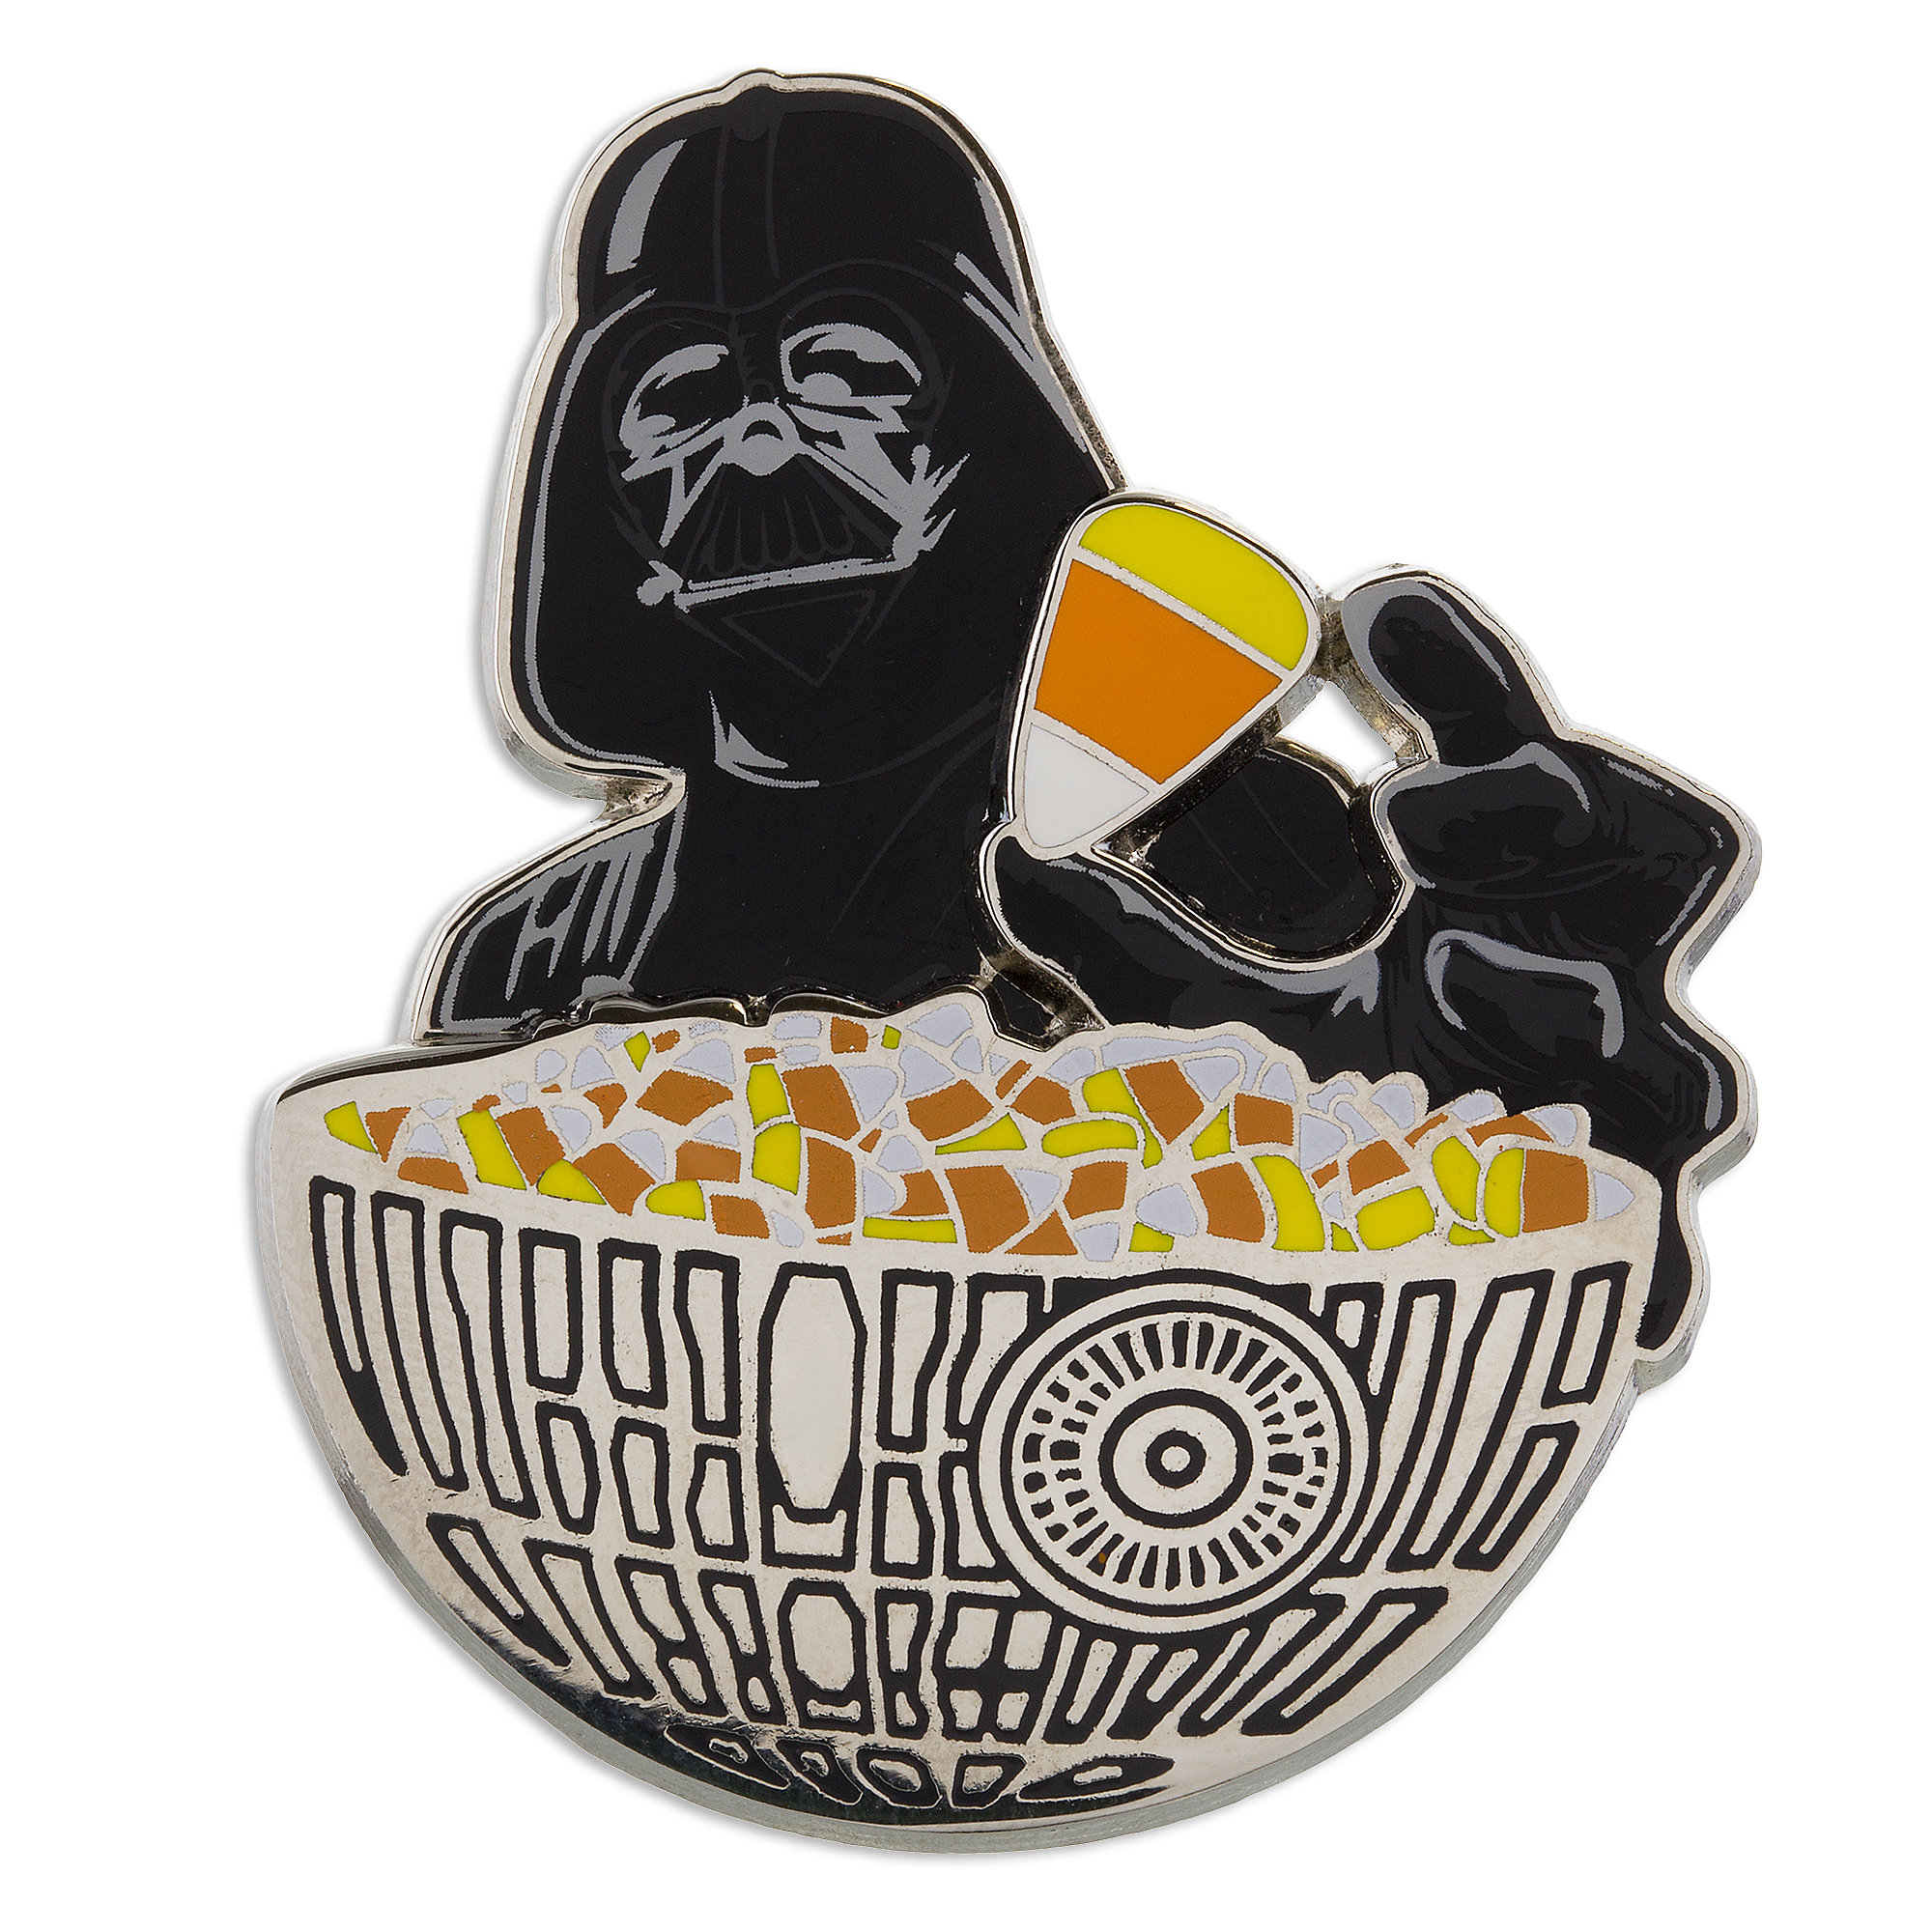 Darth Vader Halloween Pin - Star Wars